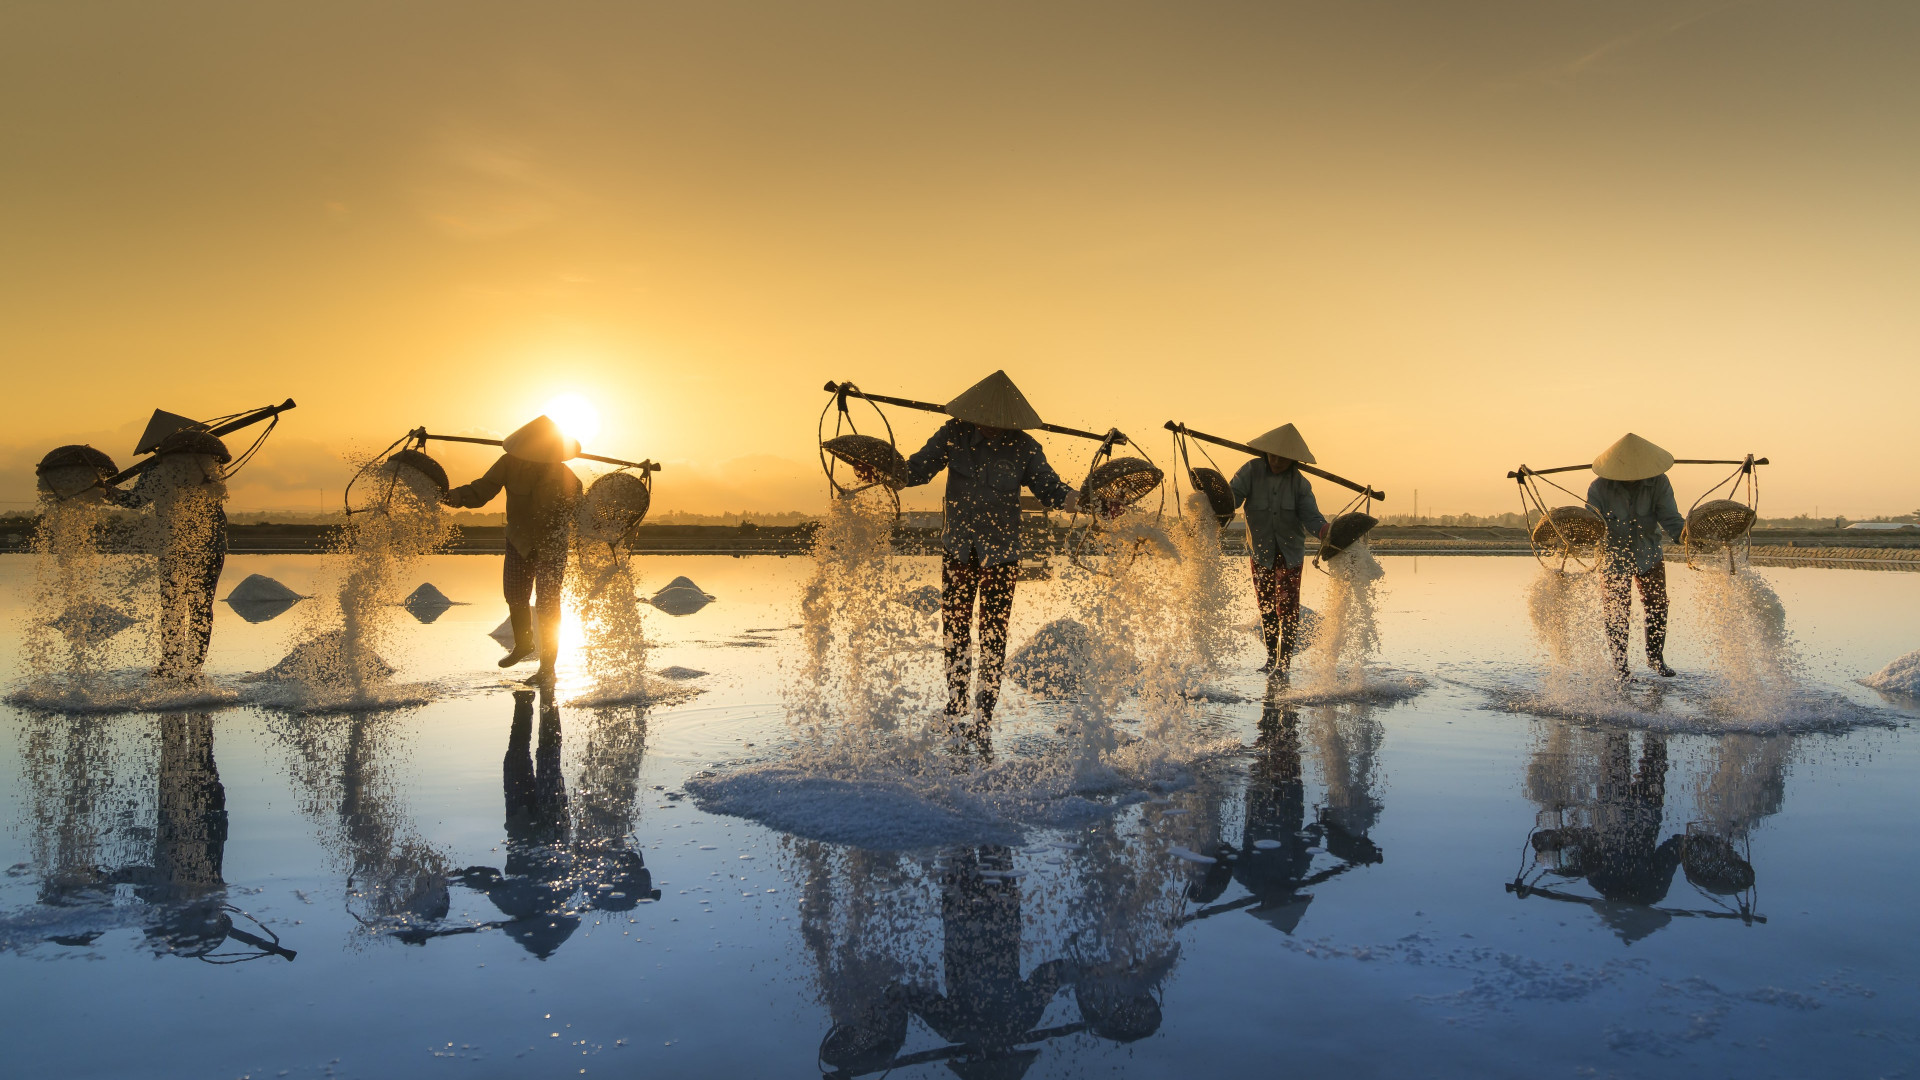 People harvesting salt in Vietnam | 1920x1080 wallpaper